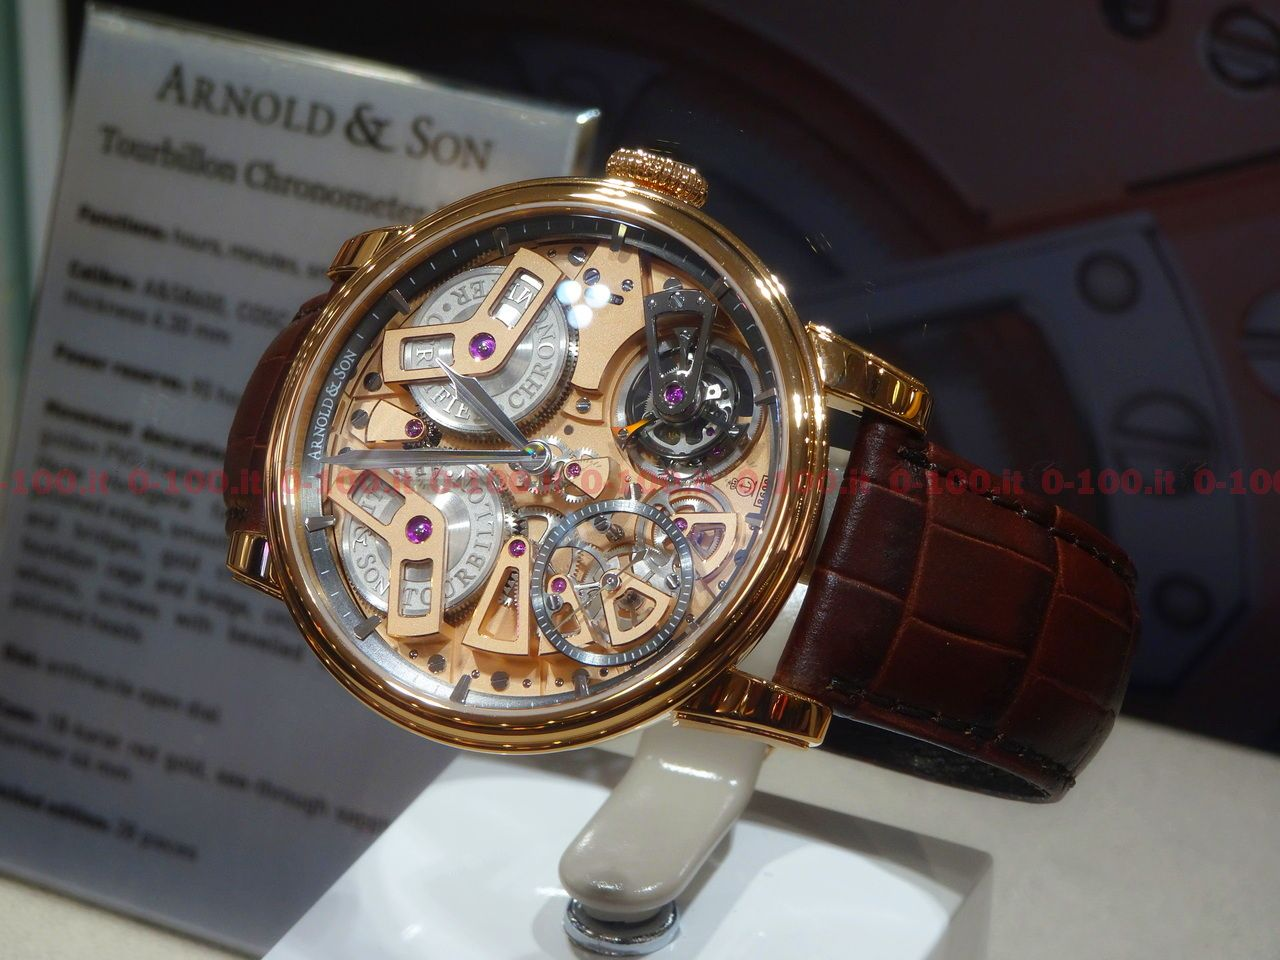 baselworld_2017_tourbillon_arnold_son_0-100_1